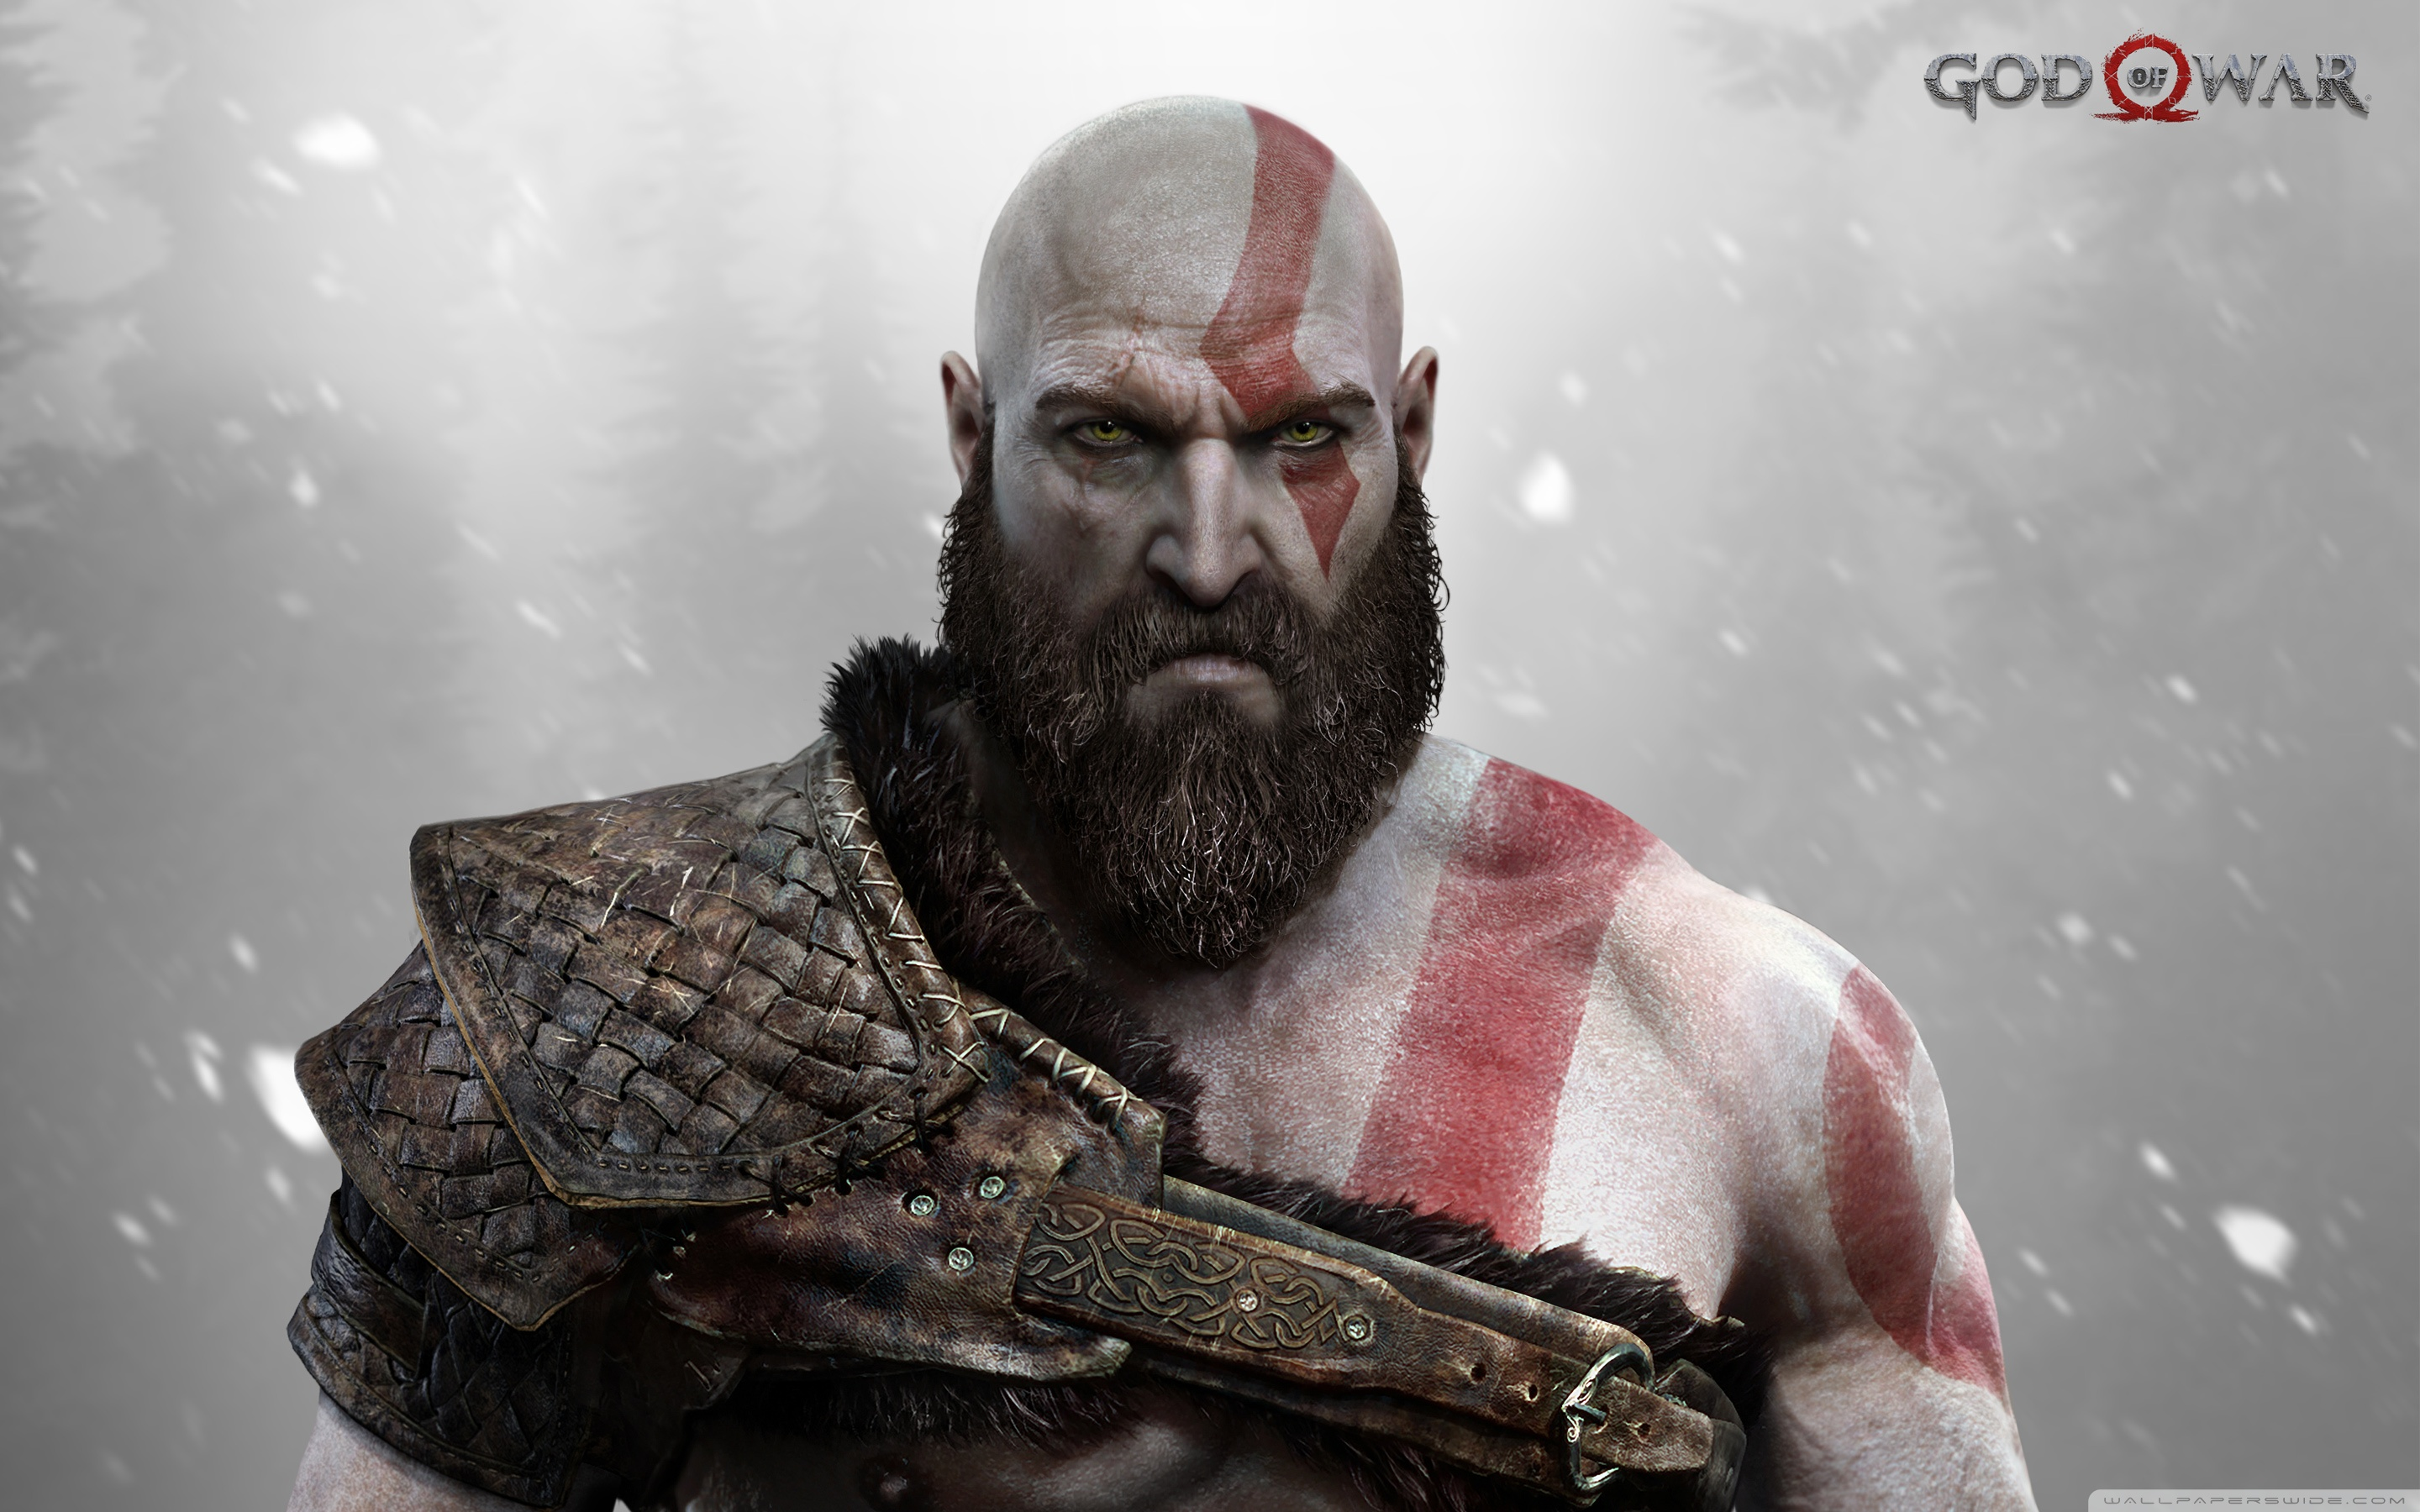 God Of War 4 Wallpaper 1080p